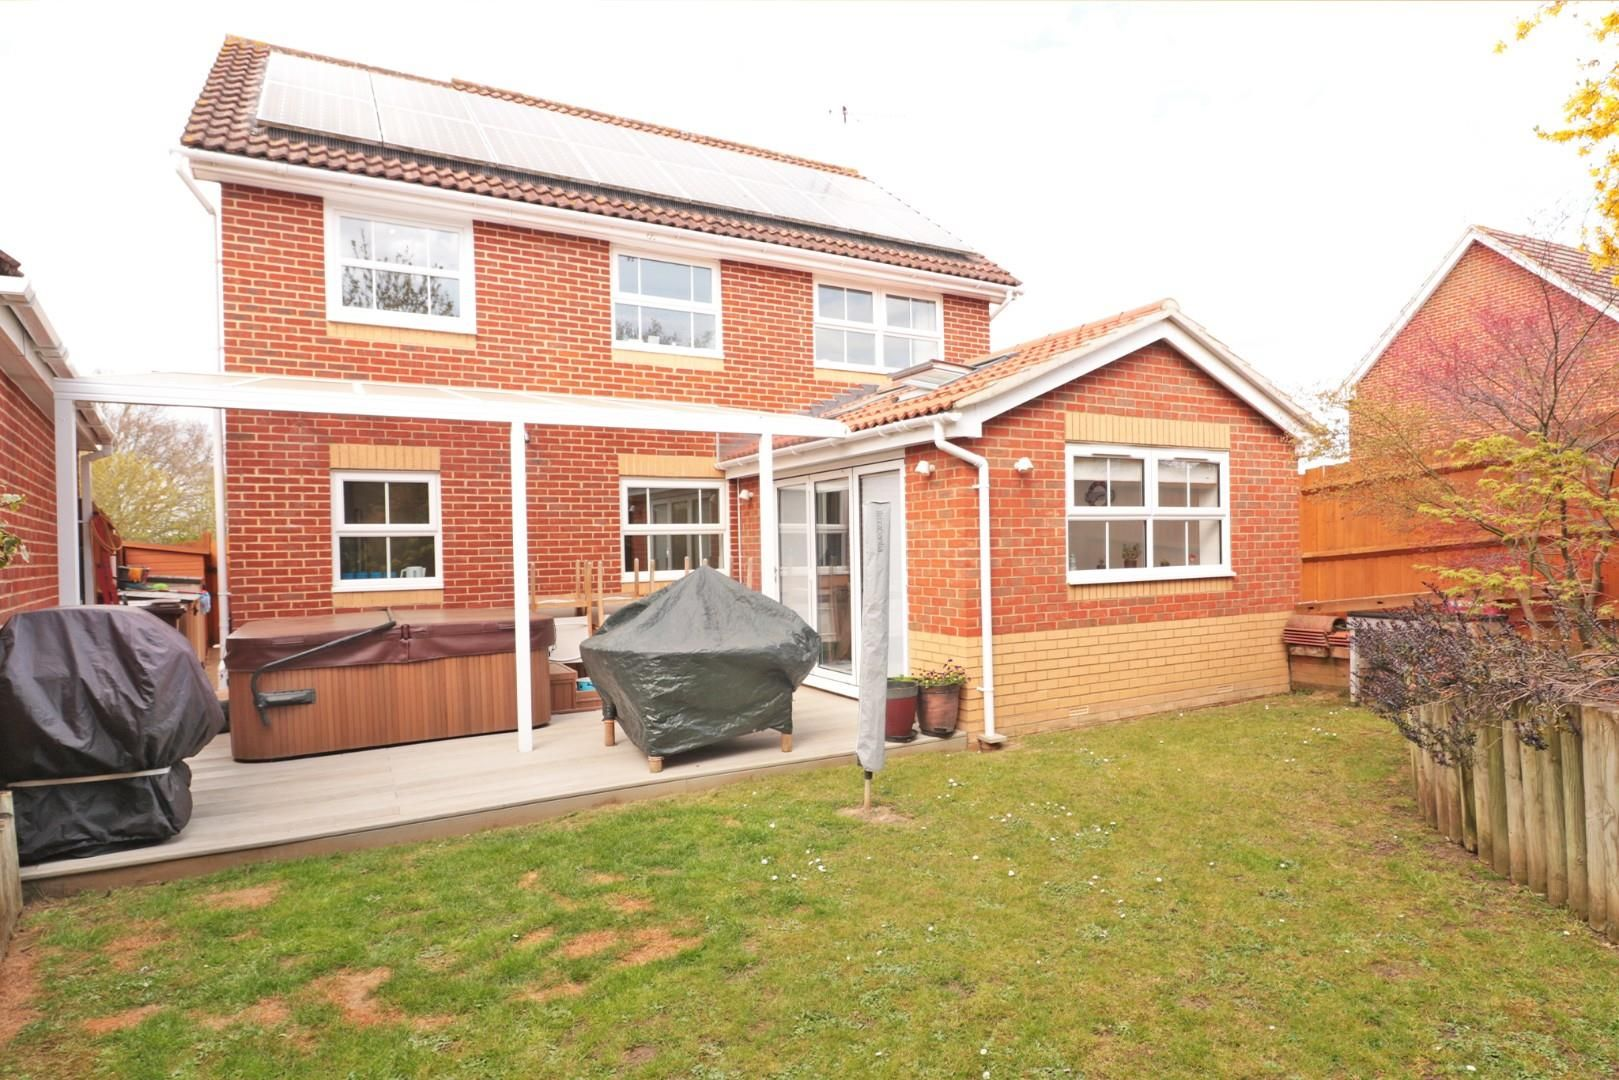 4 bed detached for sale in Binfield  - Property Image 8